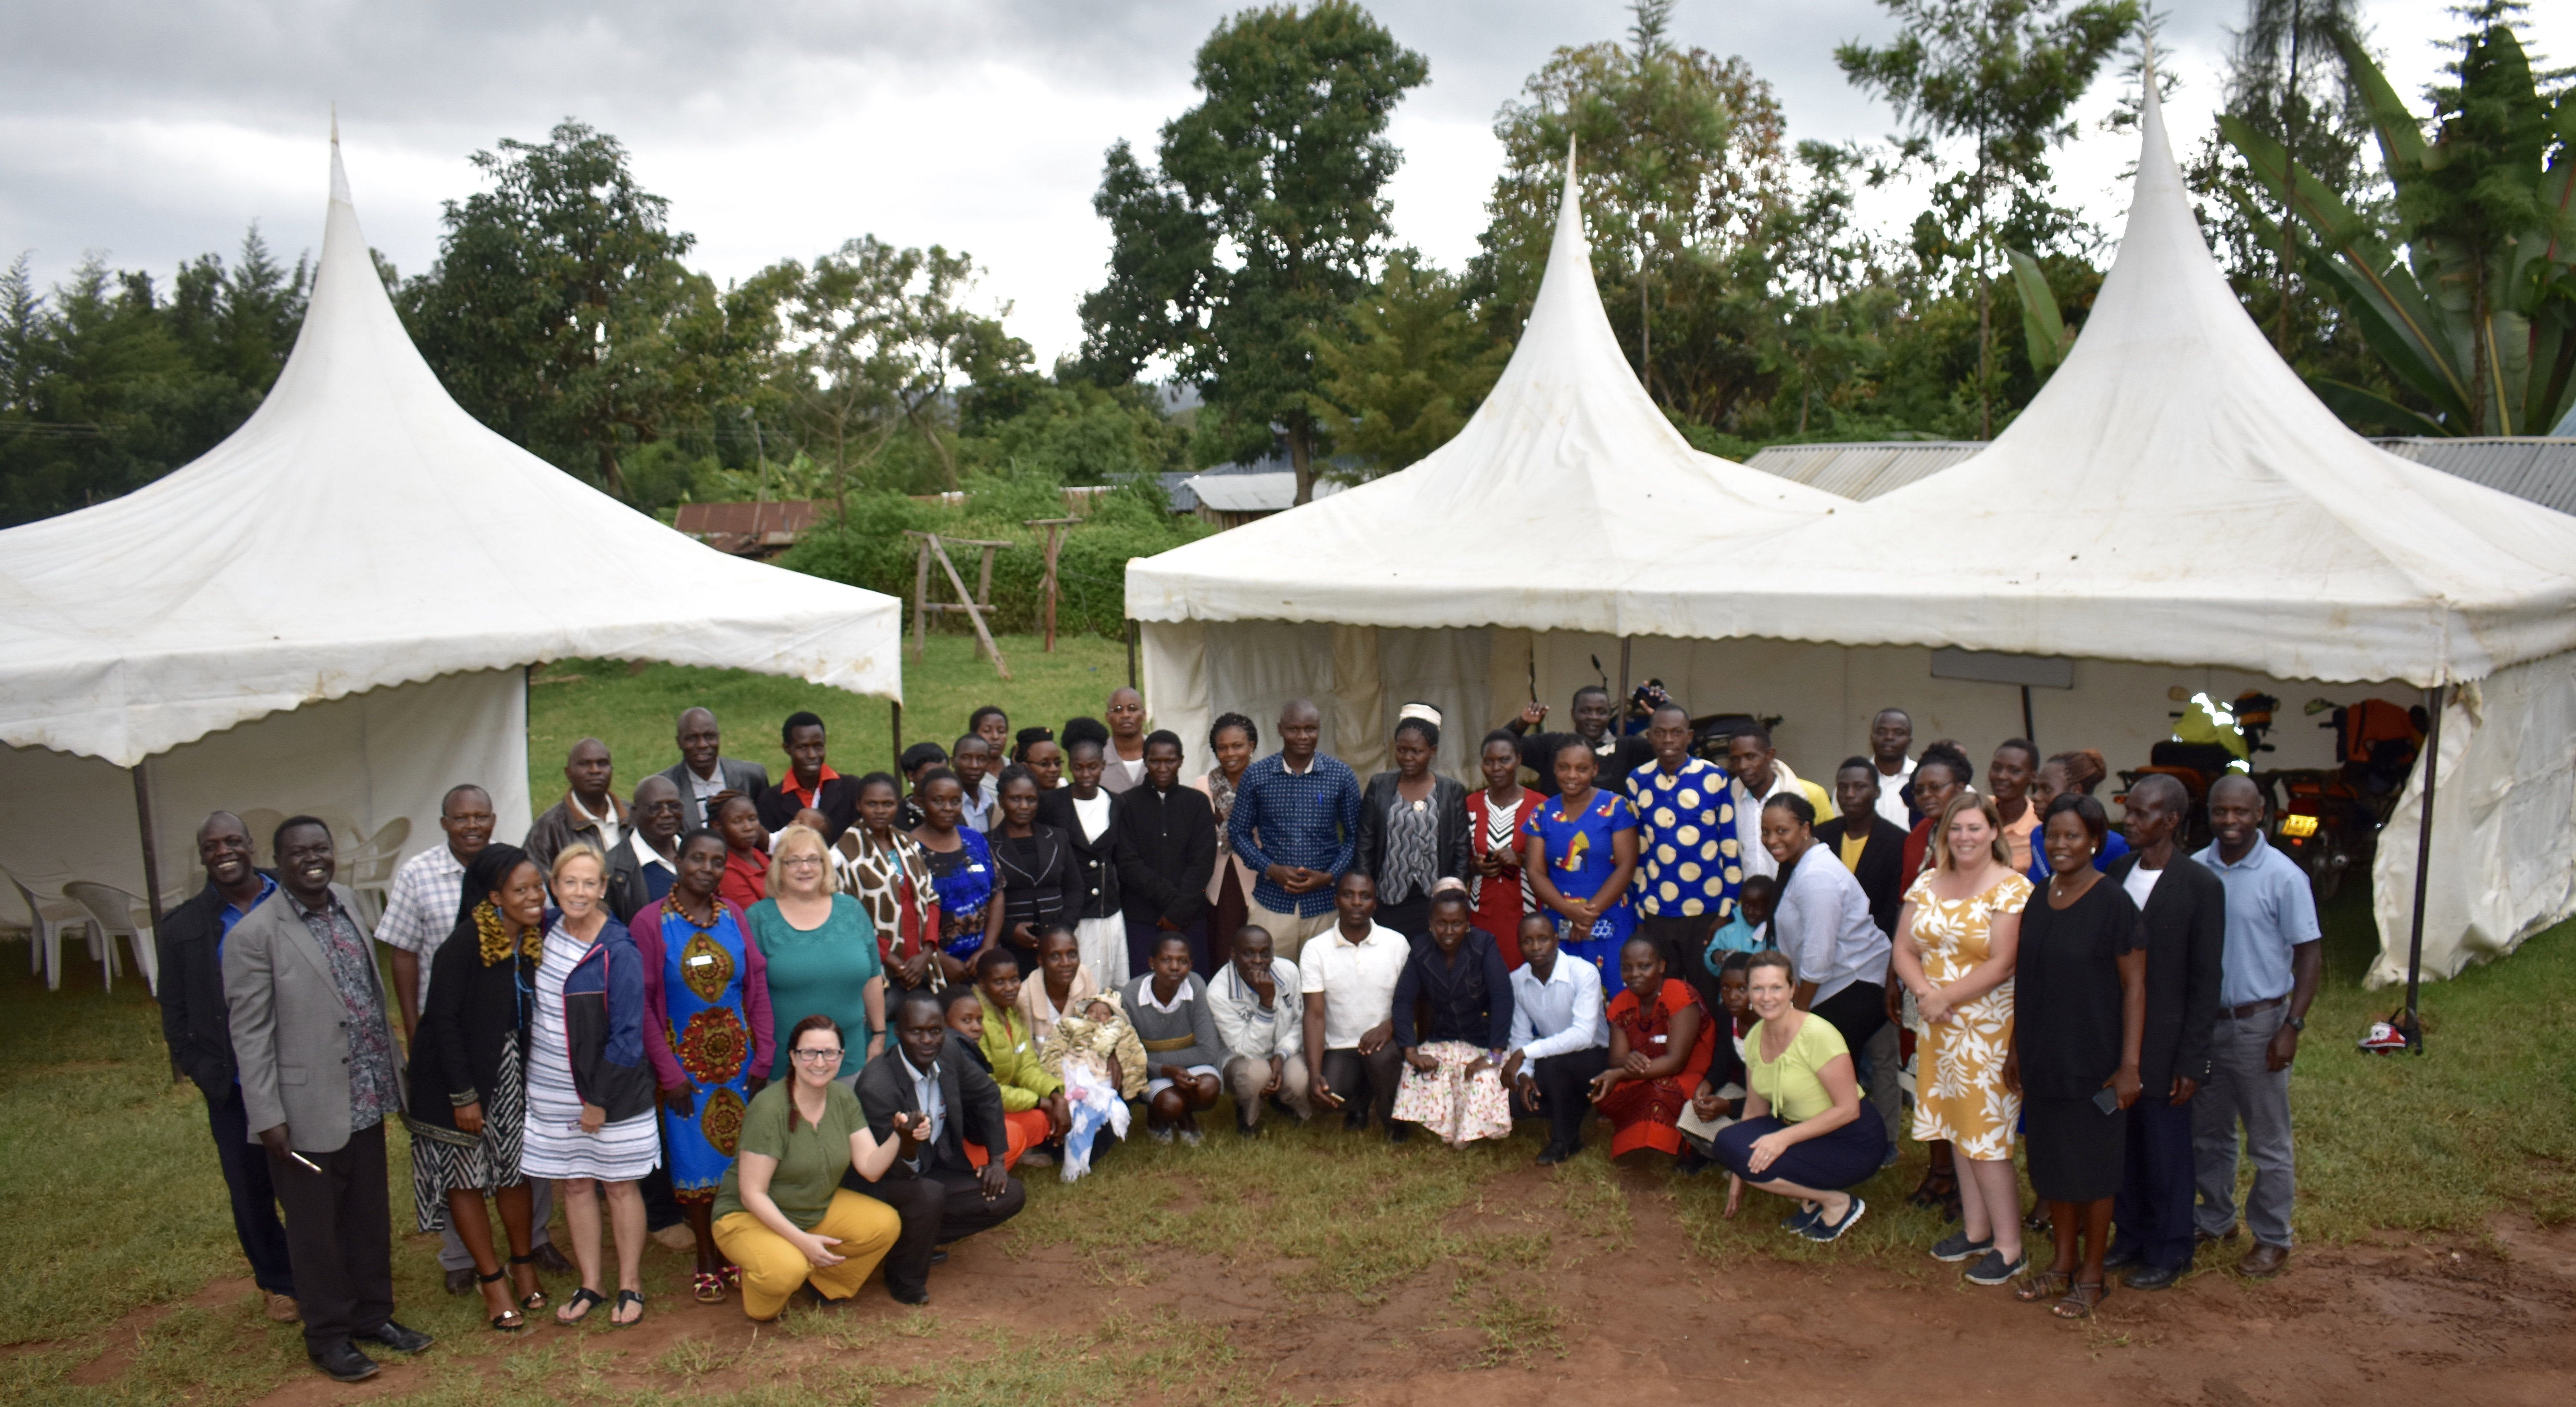 Michelle Falter, Ph.D., joins teachers in Kenya following a professional development workshop.